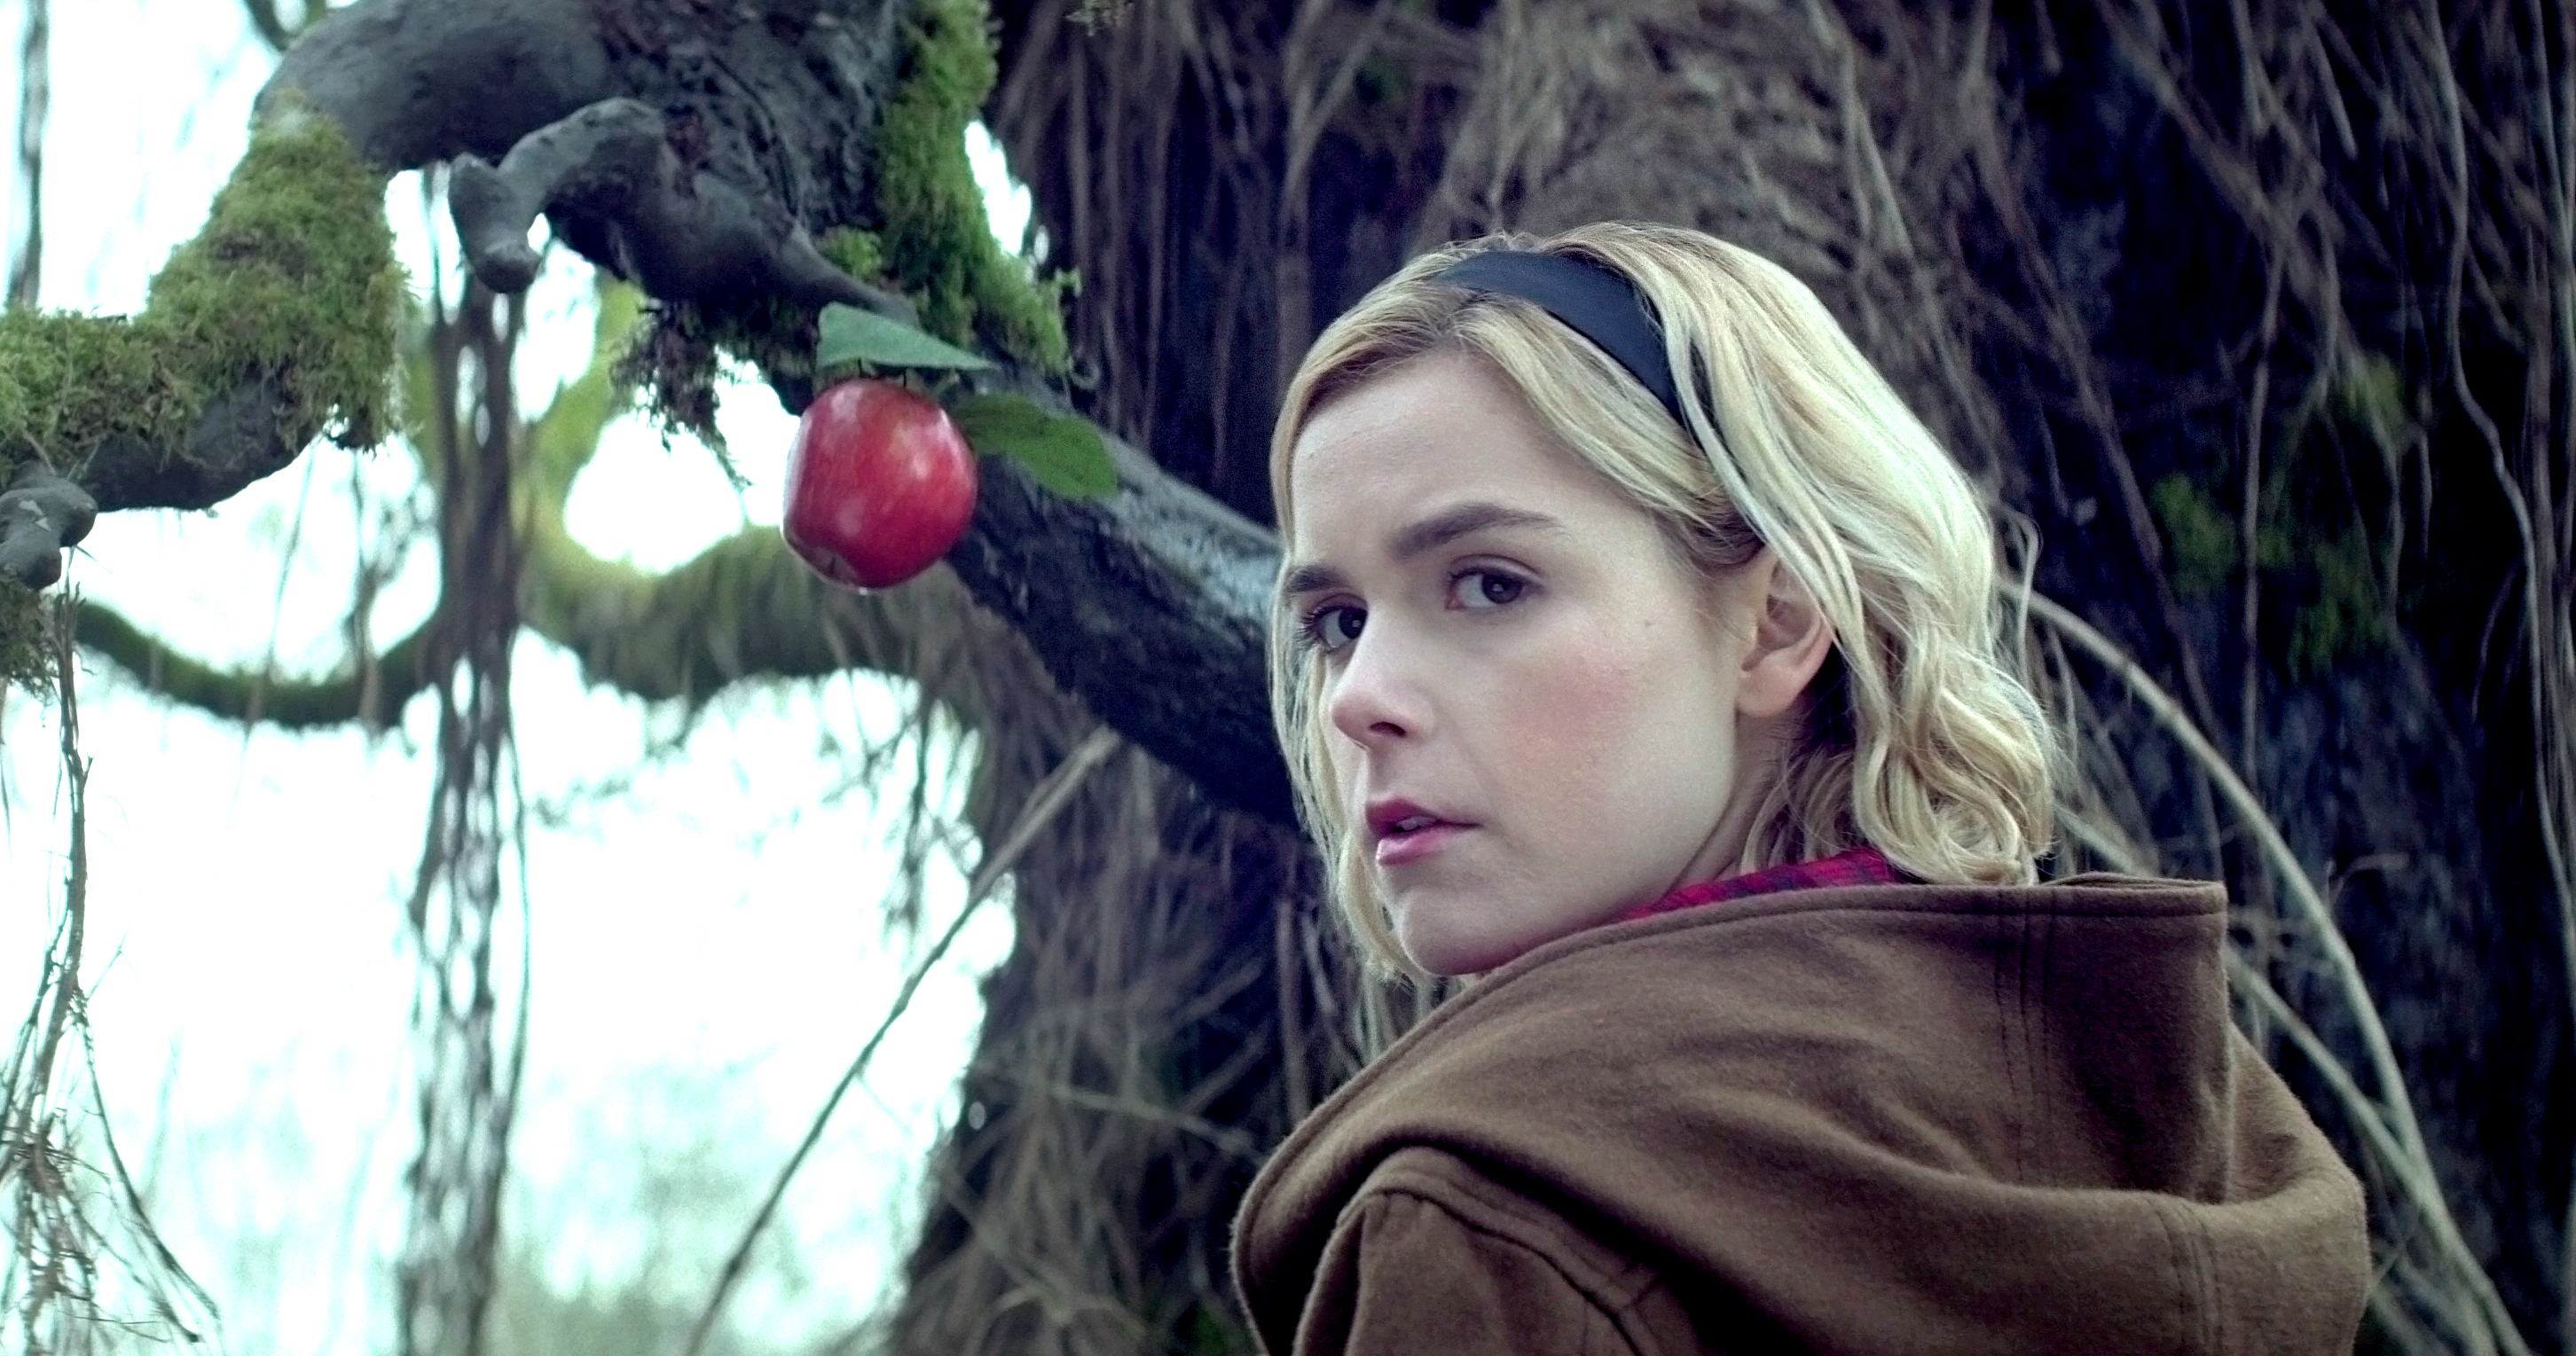 Kiernan-Shipka-Sabrina - Shipka won Mad Men fans over years ago. However, the 19-year-old stepped into the leading role in The Chilling Adventures of Sabrina and crushed any thoughts you previously had about who Sabrina Spellman was.